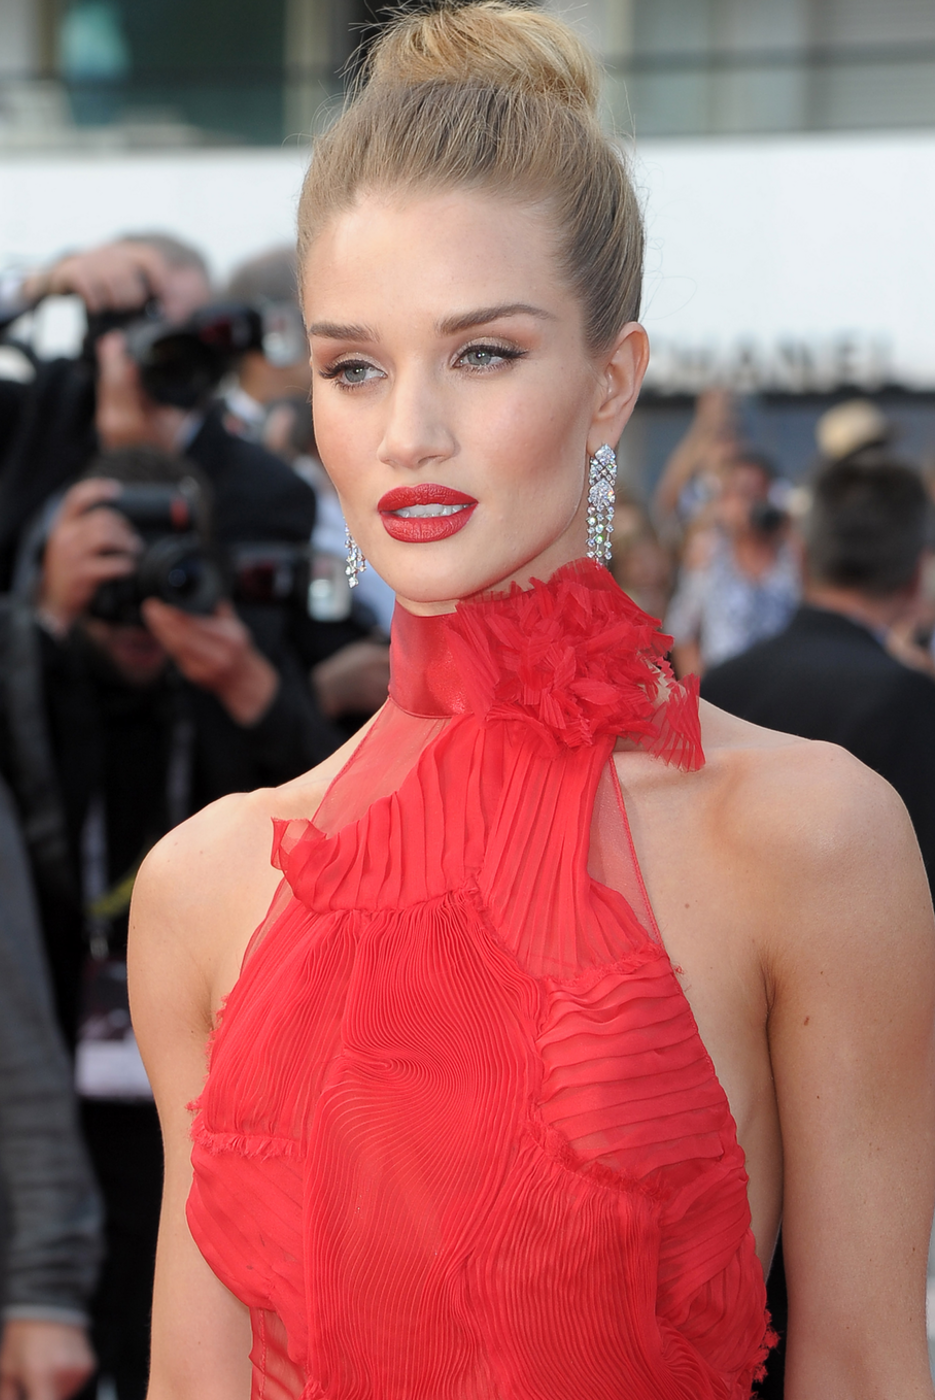 Rosie Huntington-Whiteley 2016 Cannes Film Festival